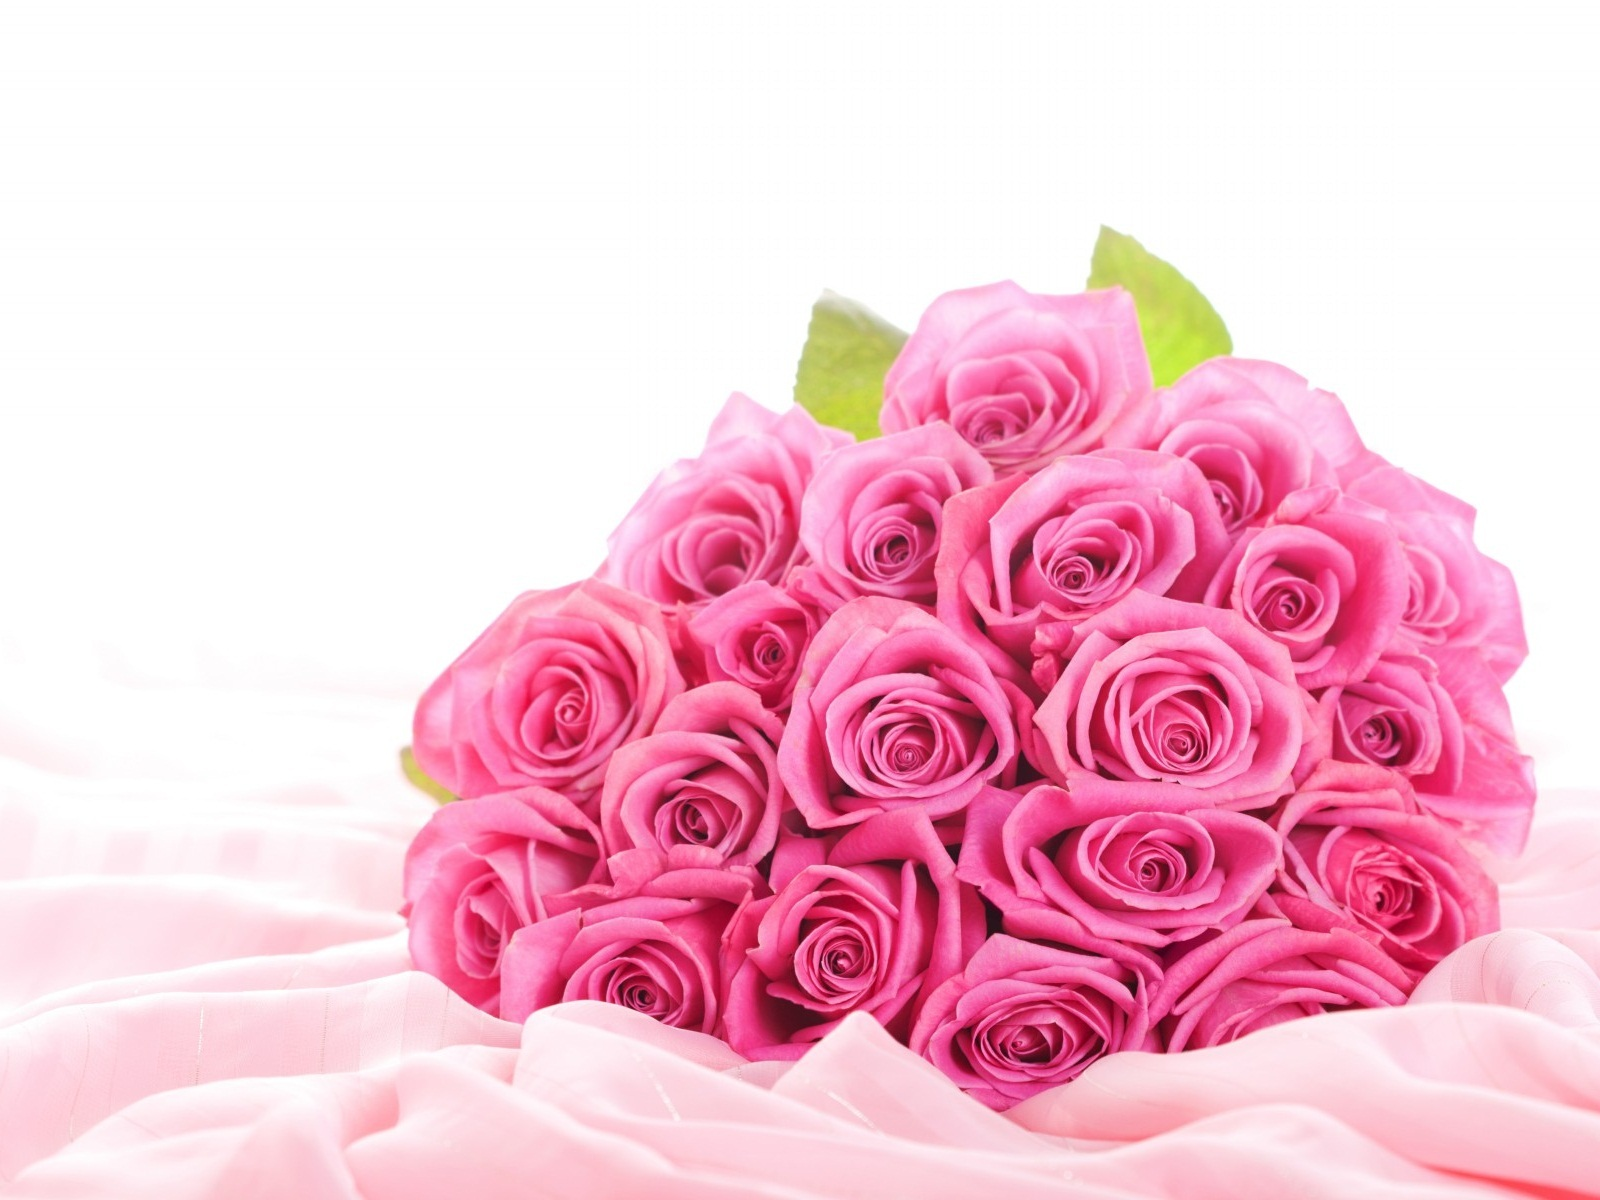 Pink Rose Wallpapers High Quality